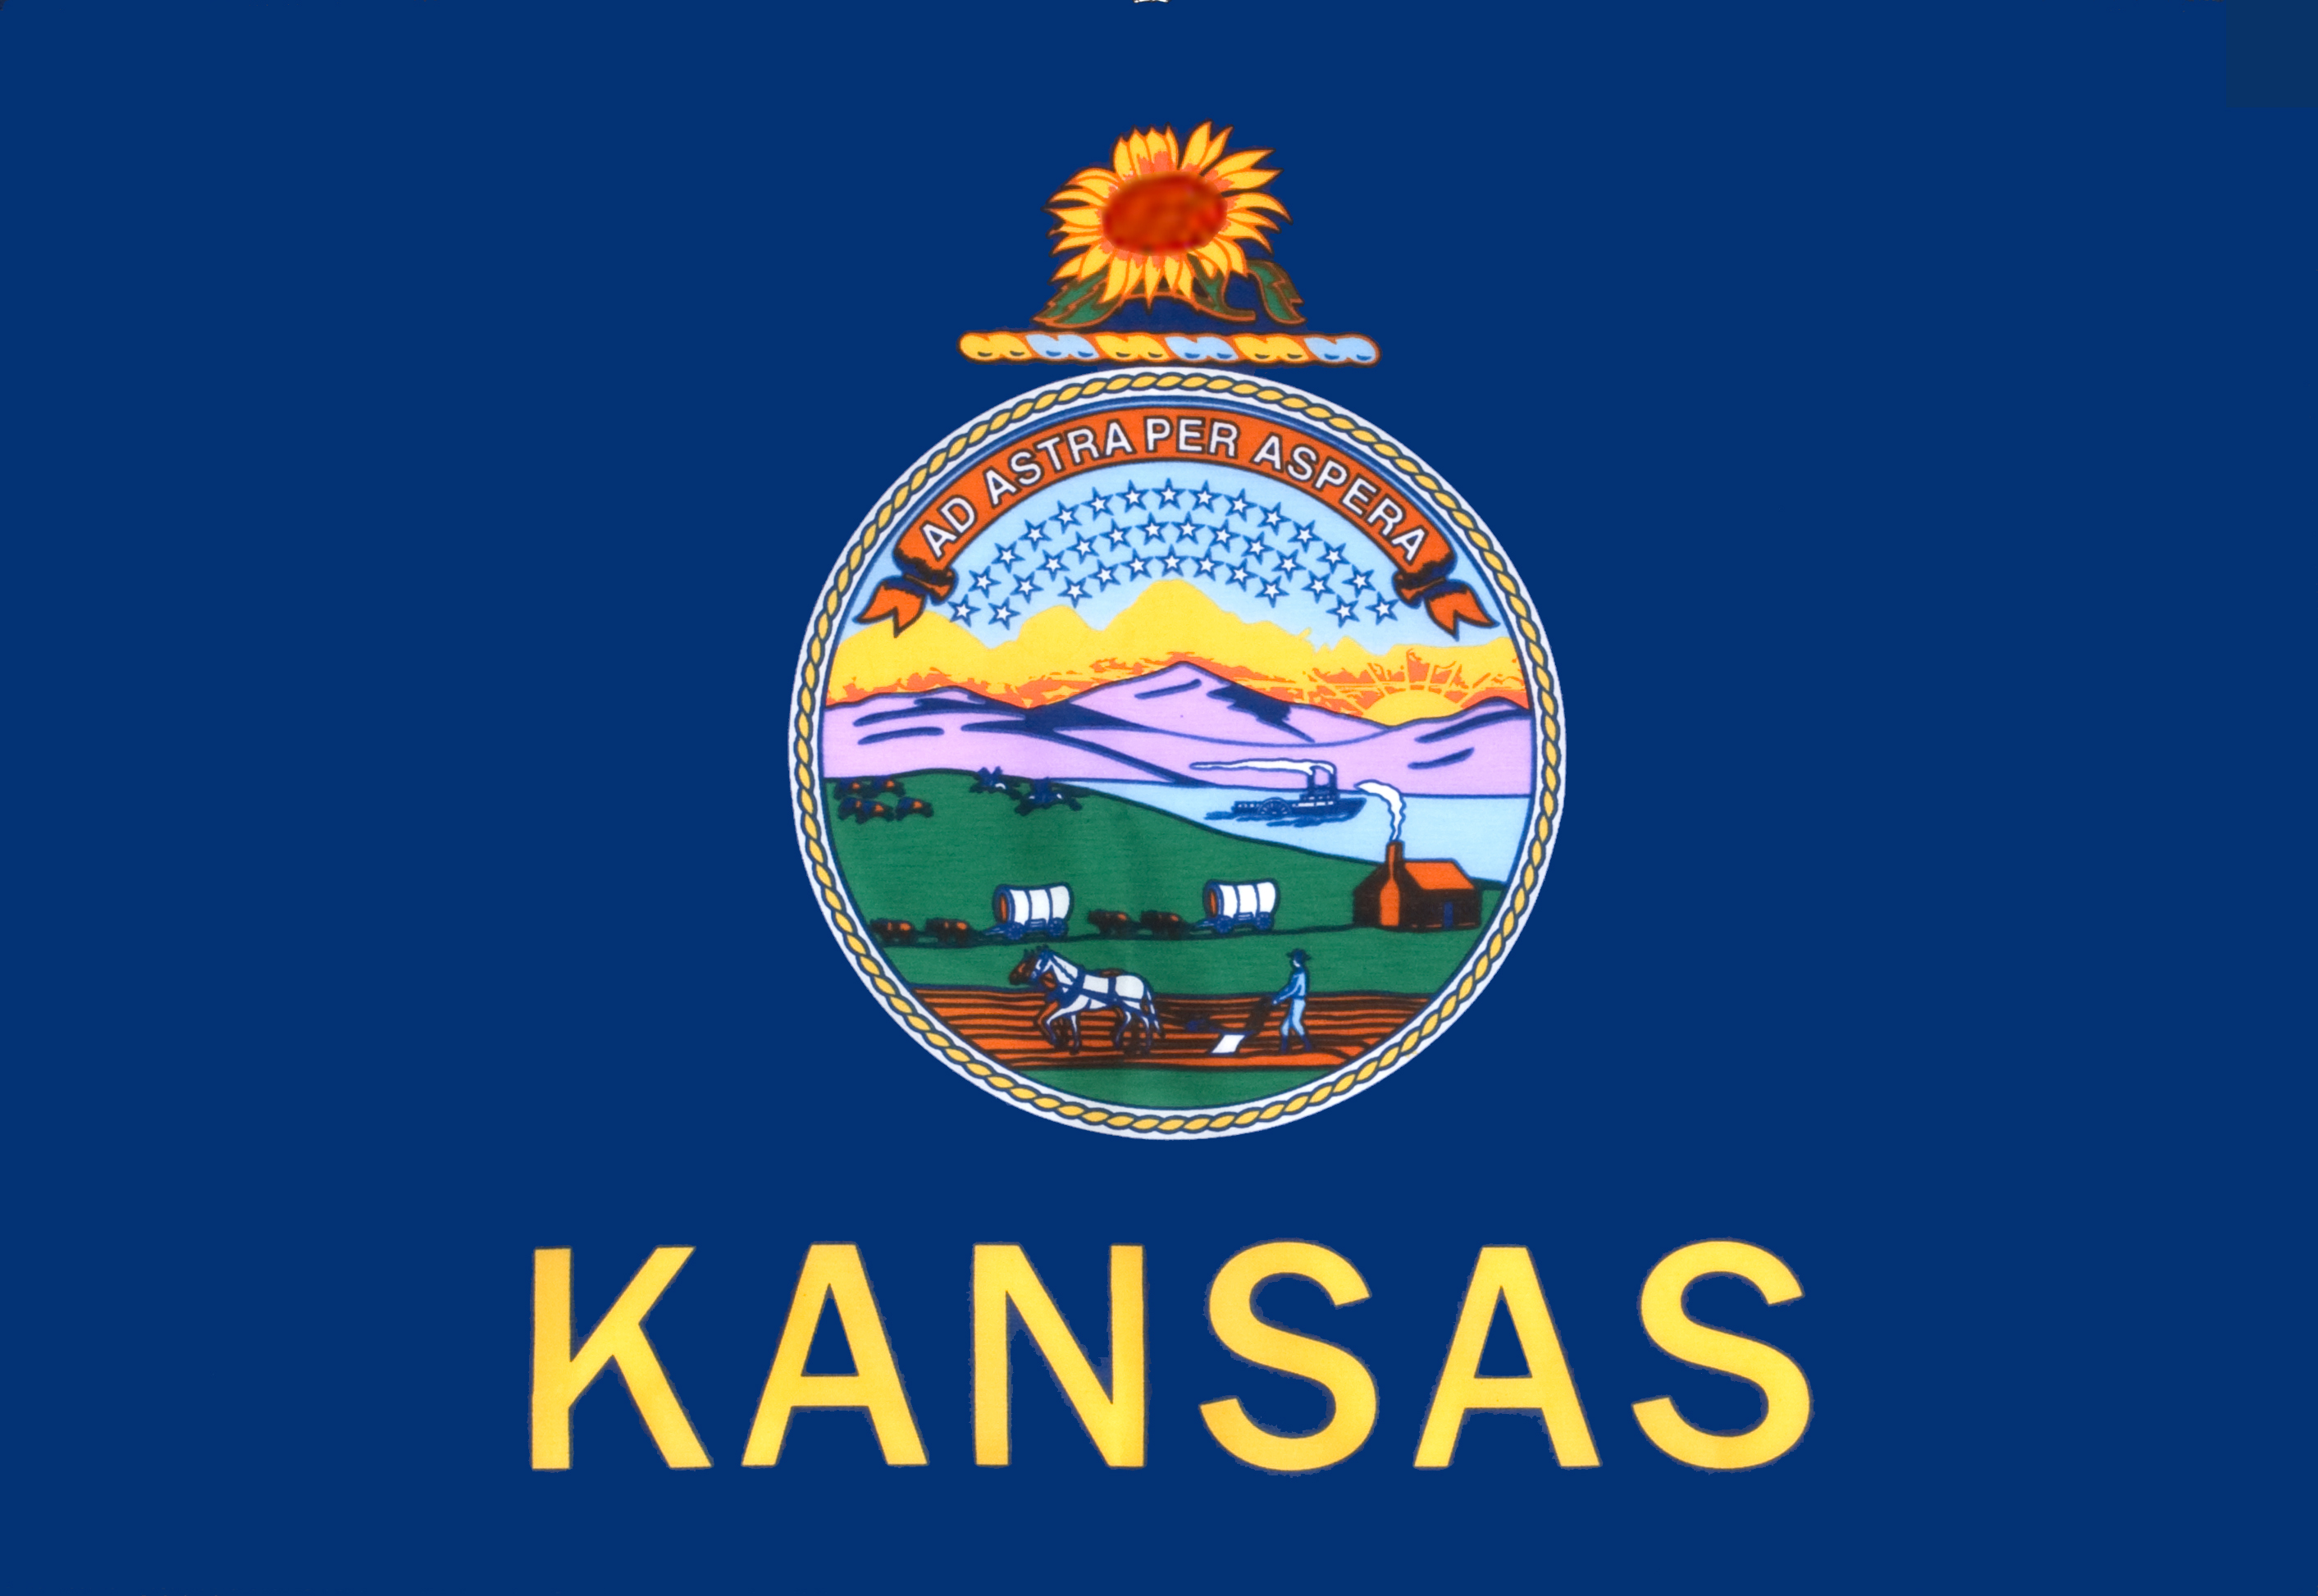 You're invited to two upcoming Kansas Fly-ins!